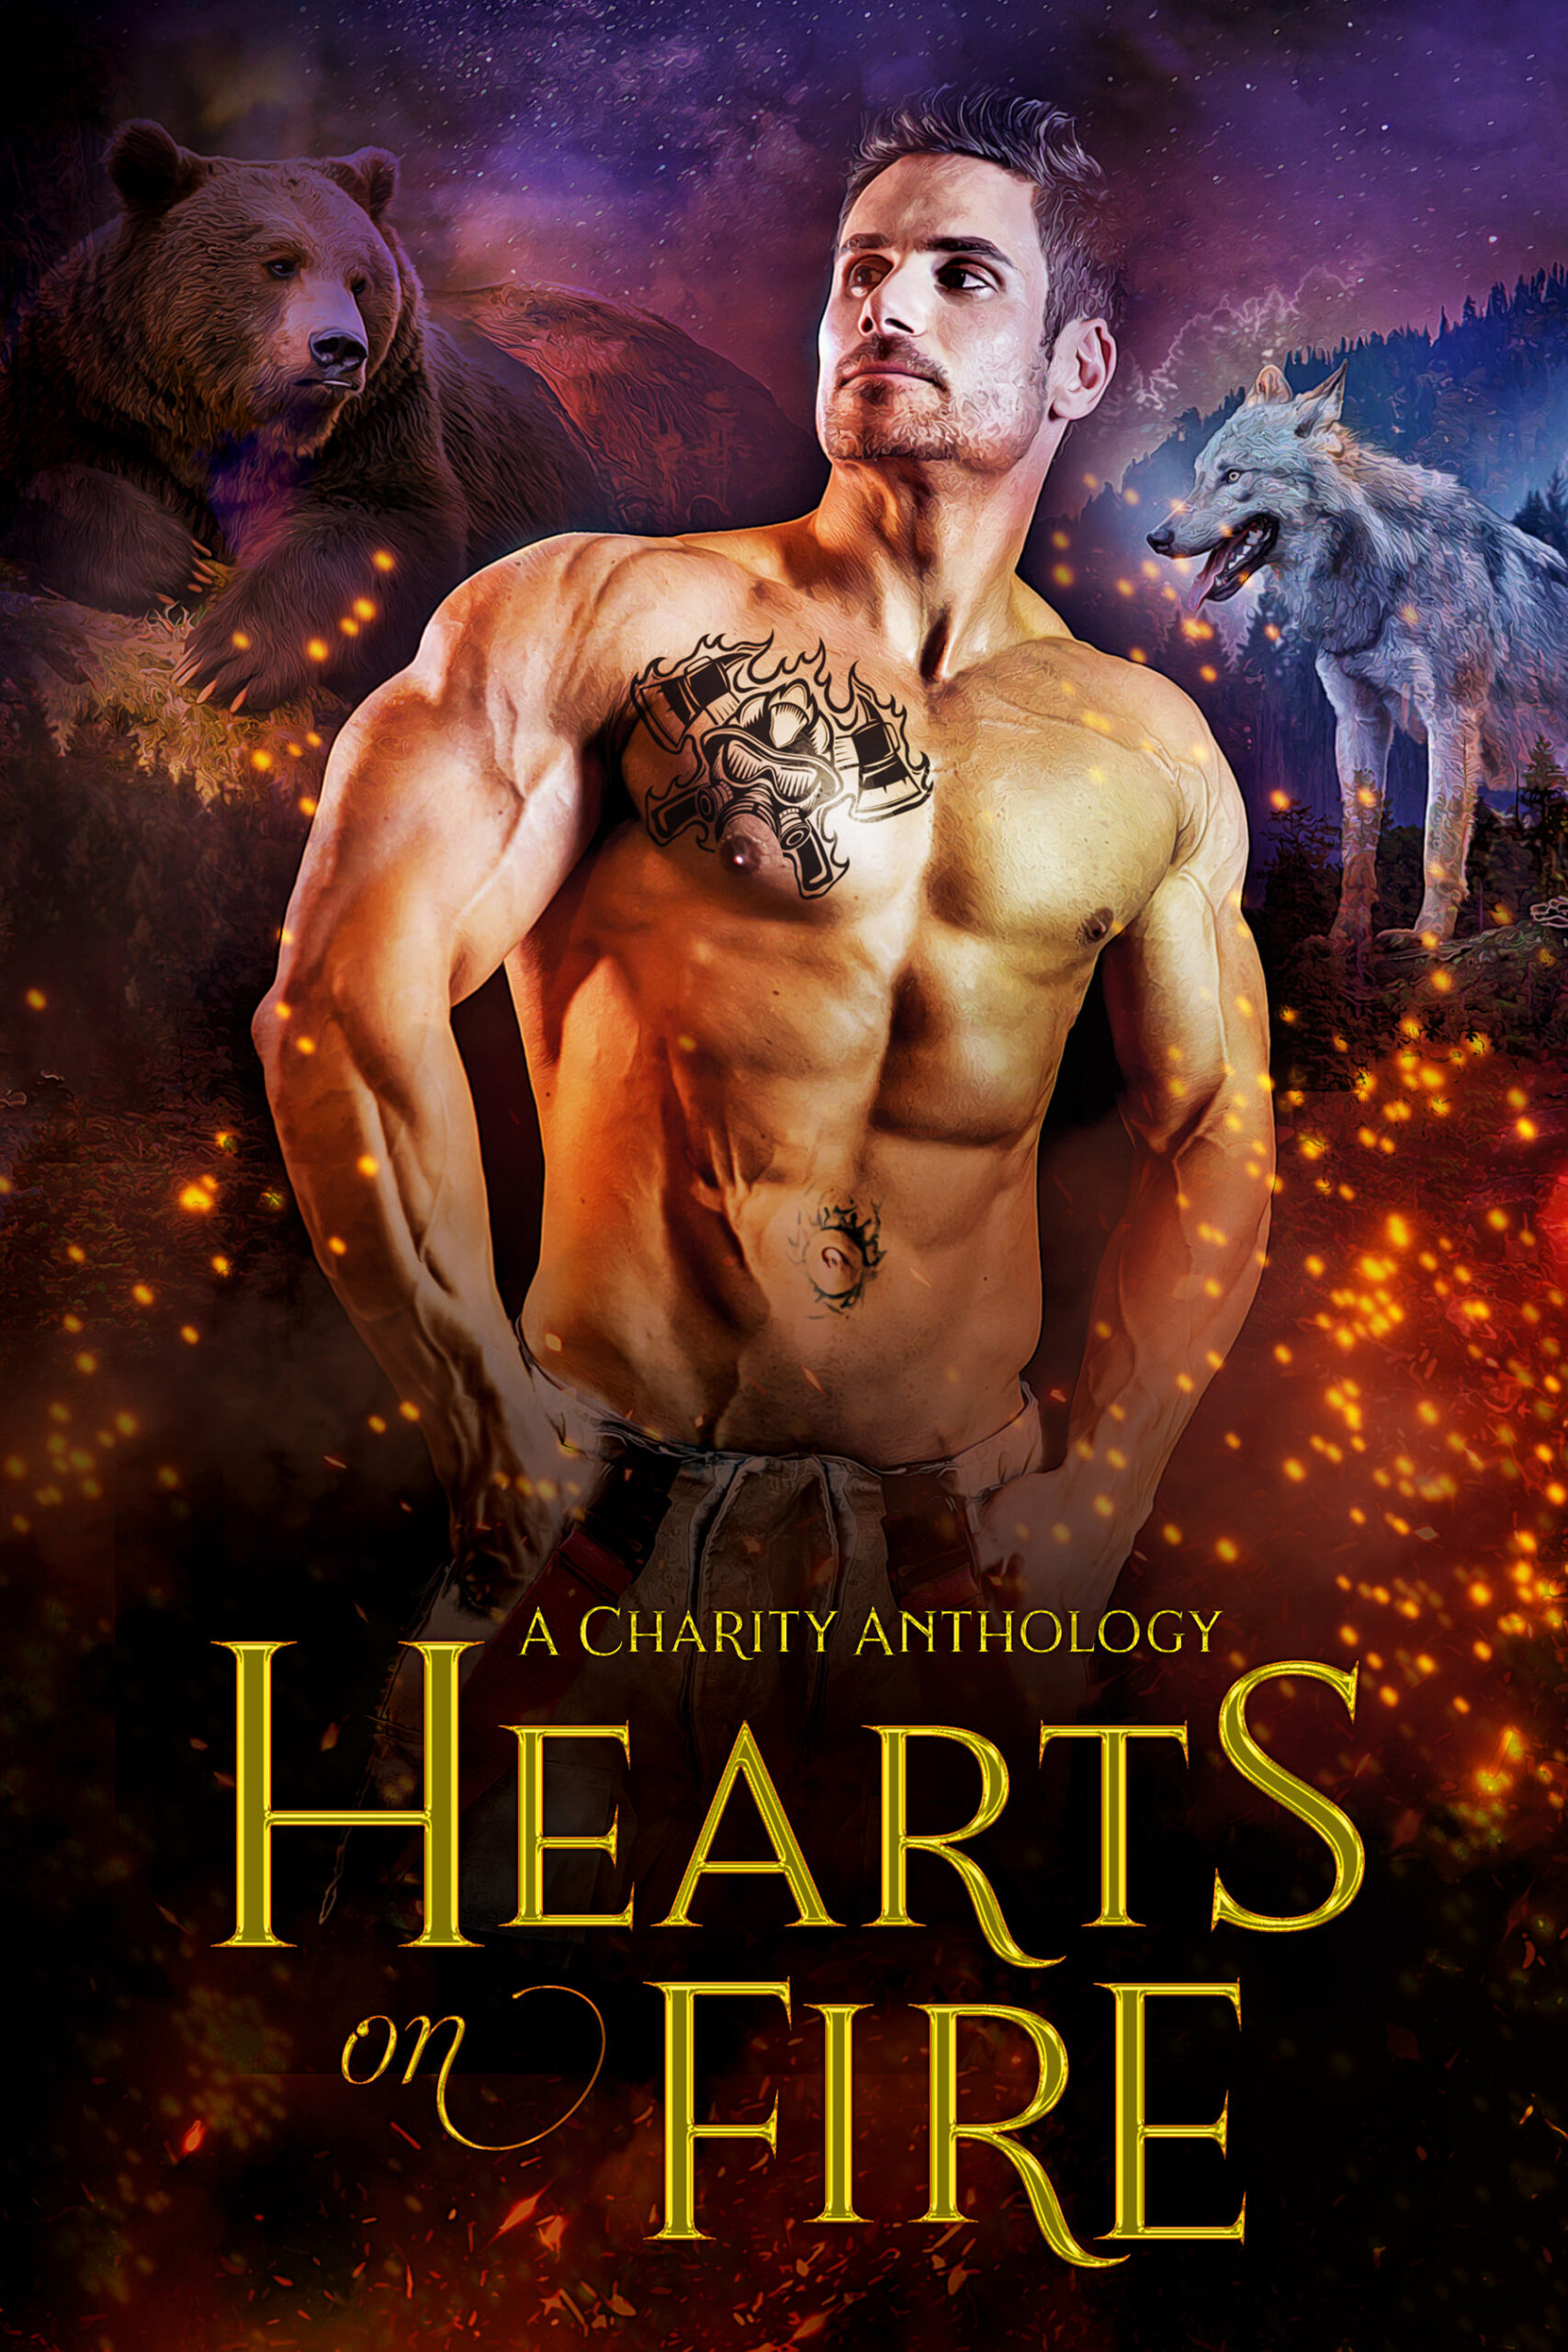 Hearts on Fire, A Charity Anthology